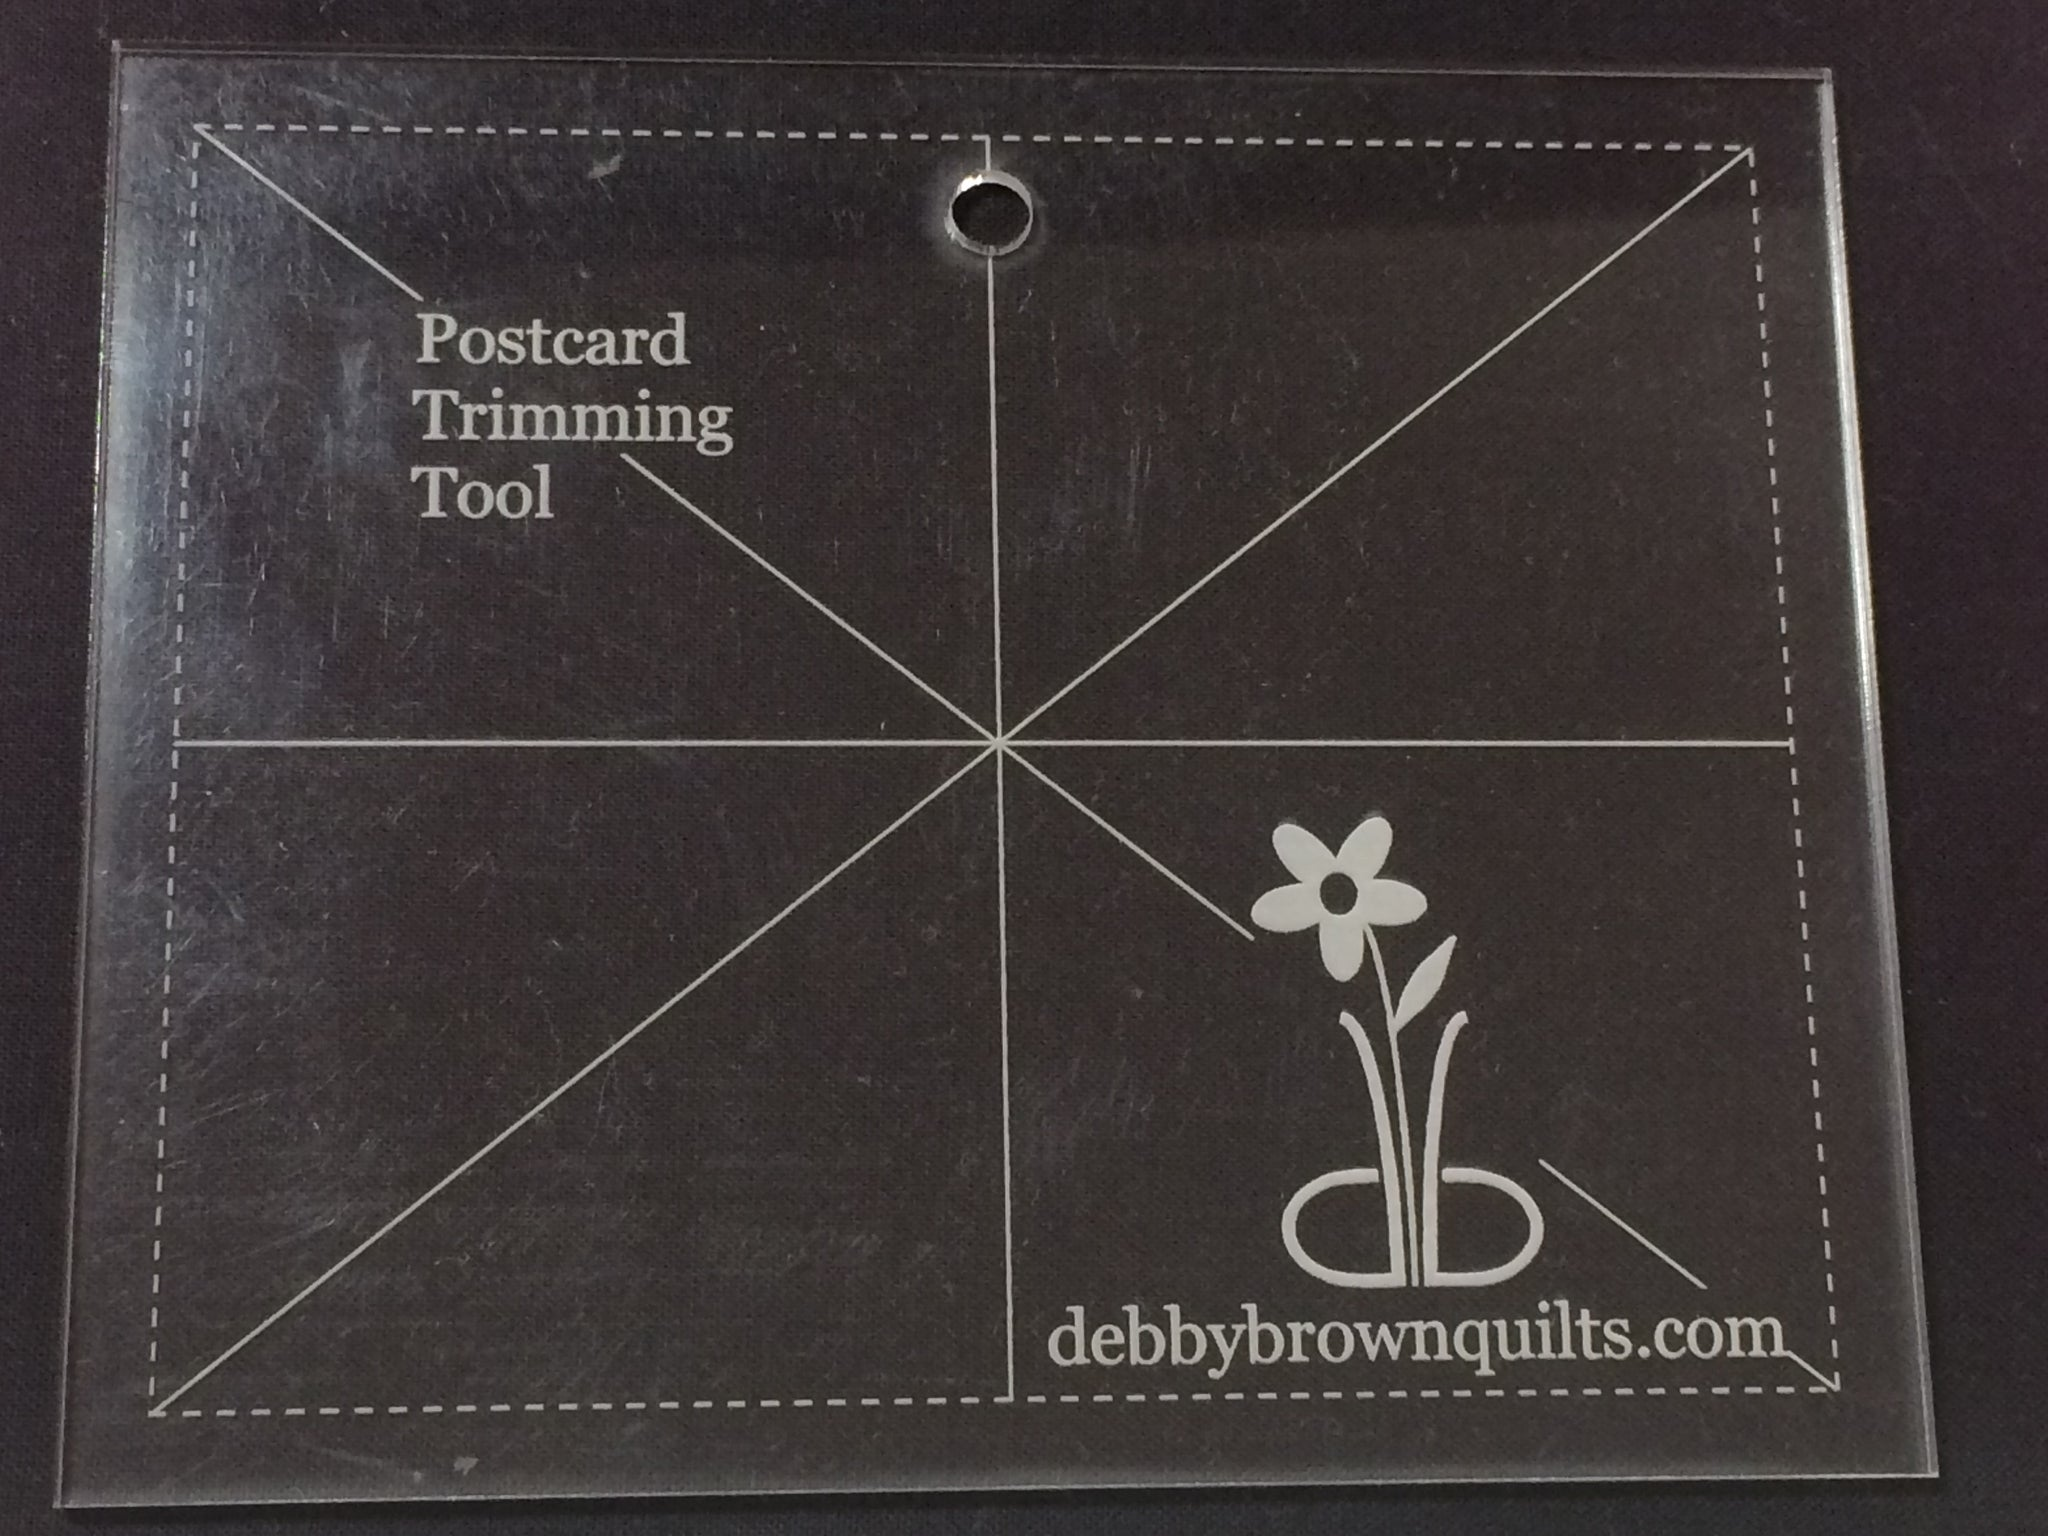 Postcard Trimming Tool